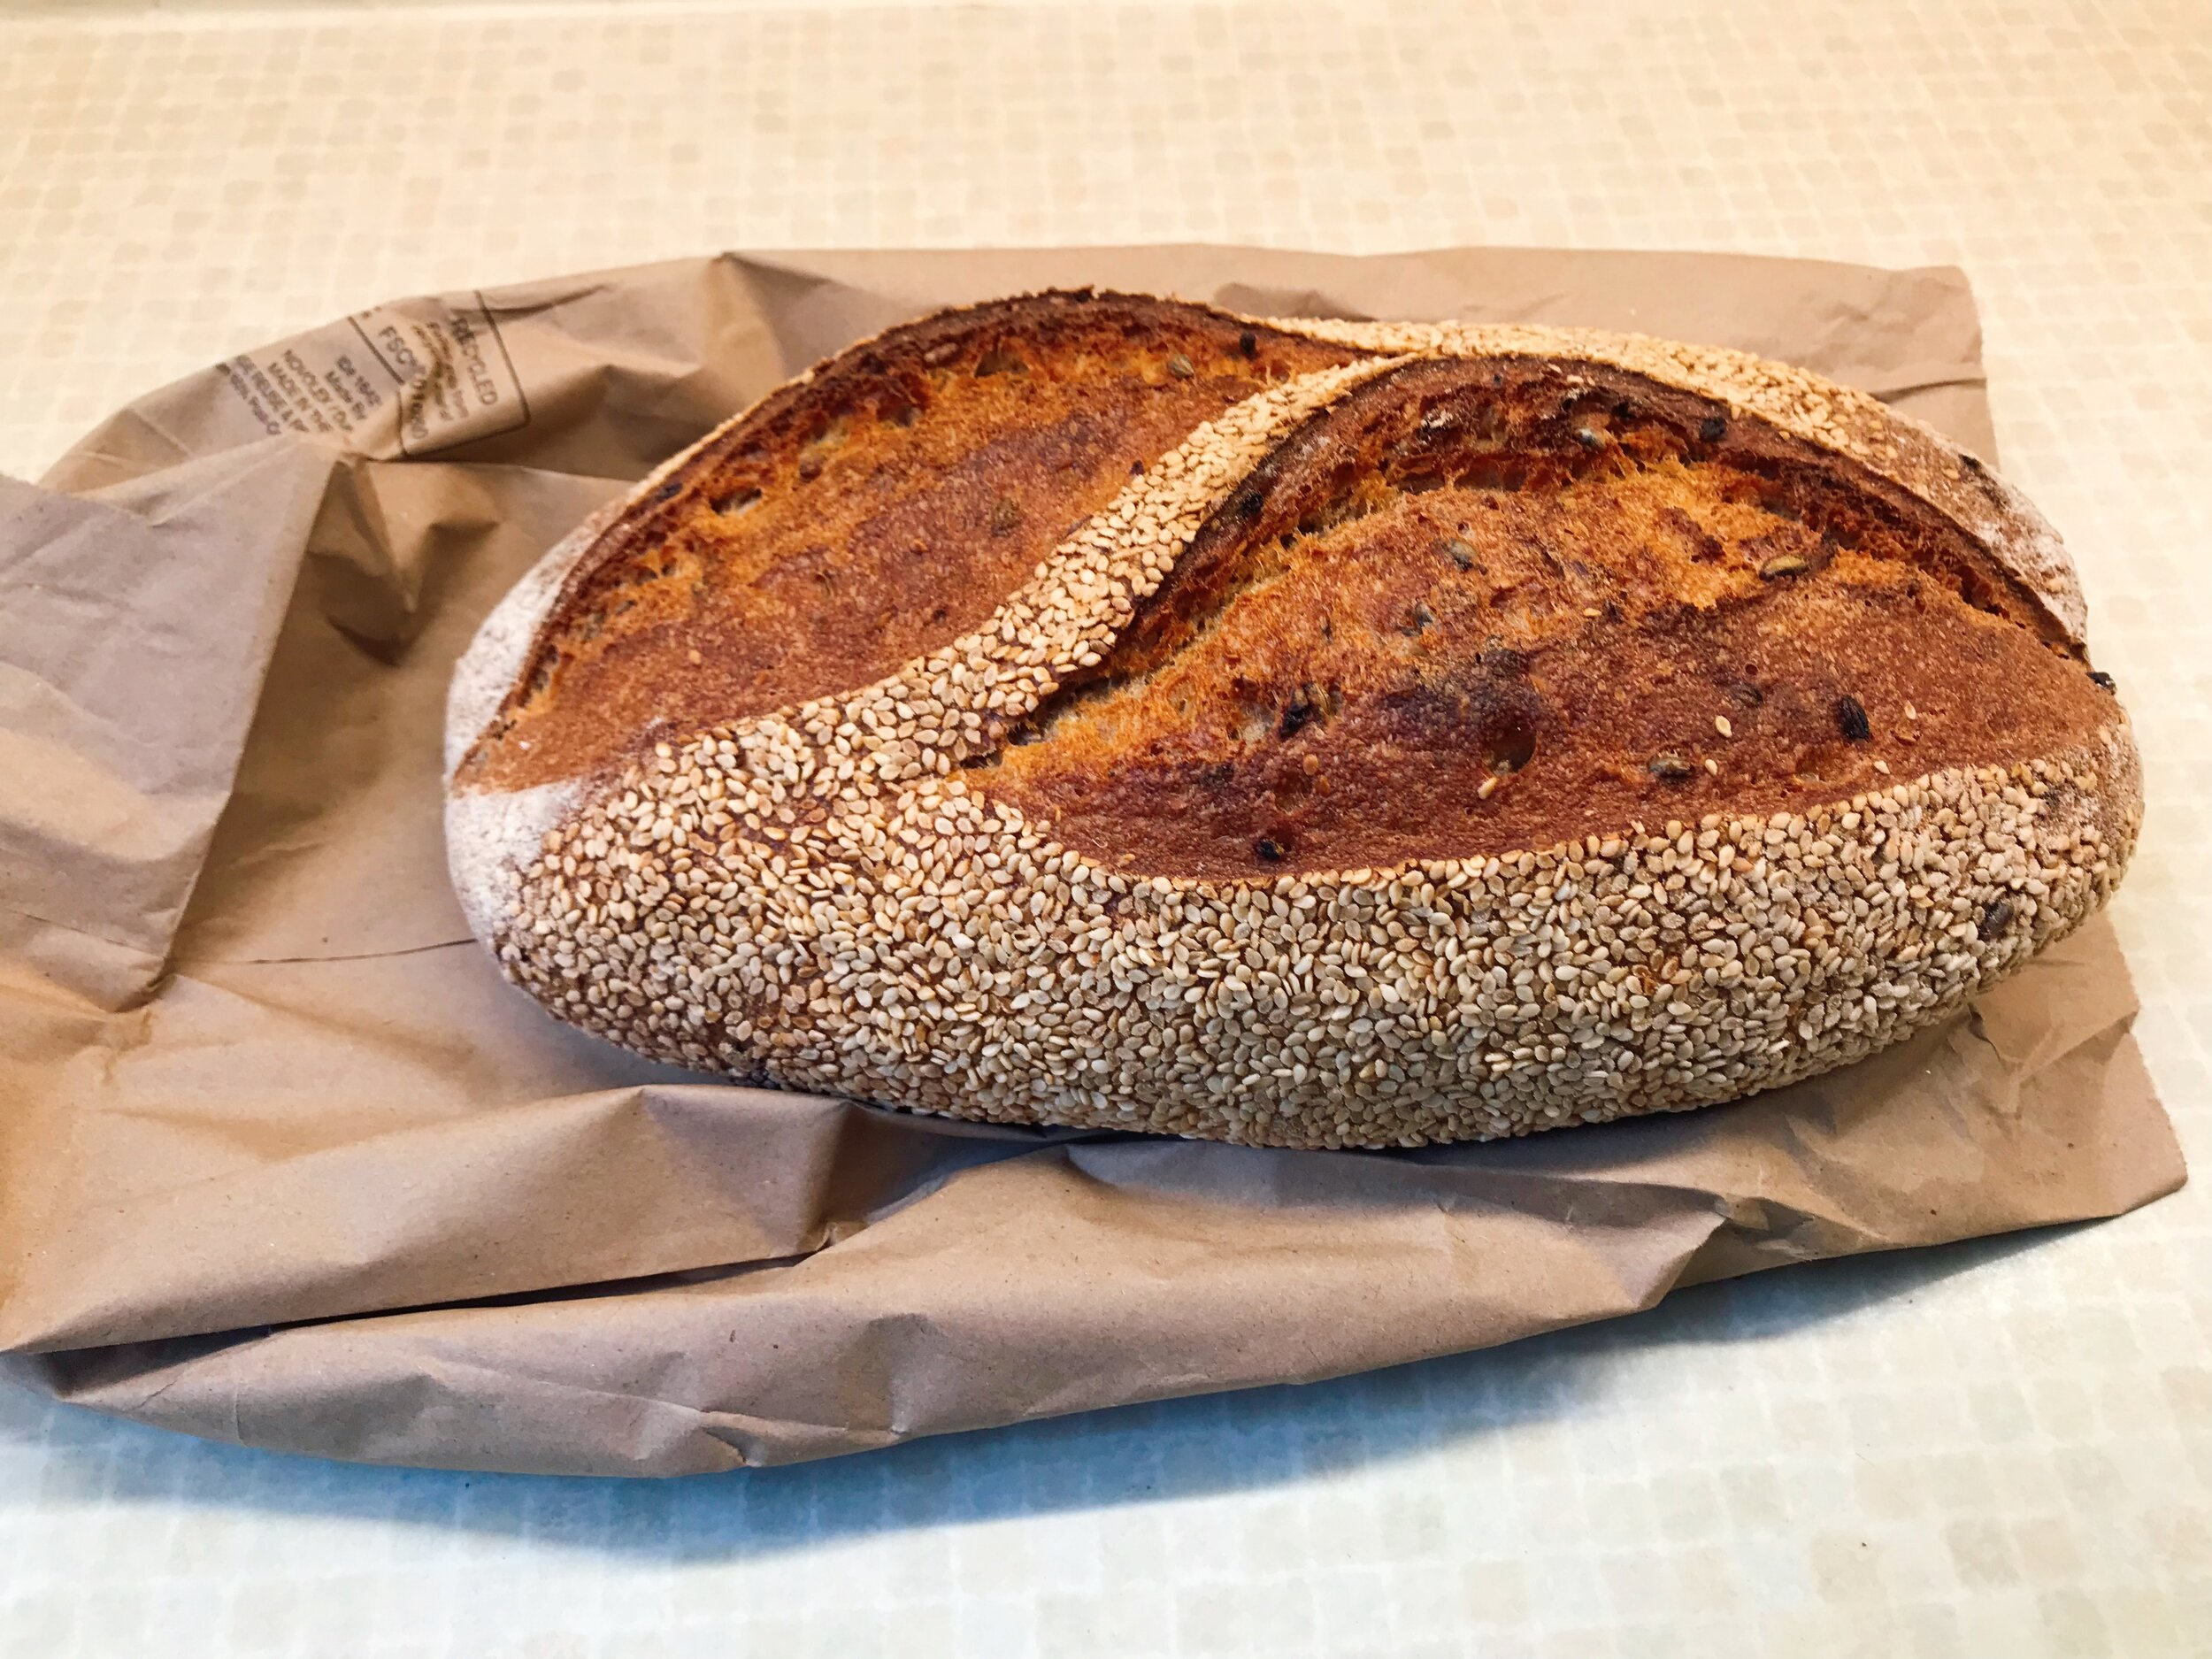 Here is the bread we used. I had to include a picture because it was SO delicious!!